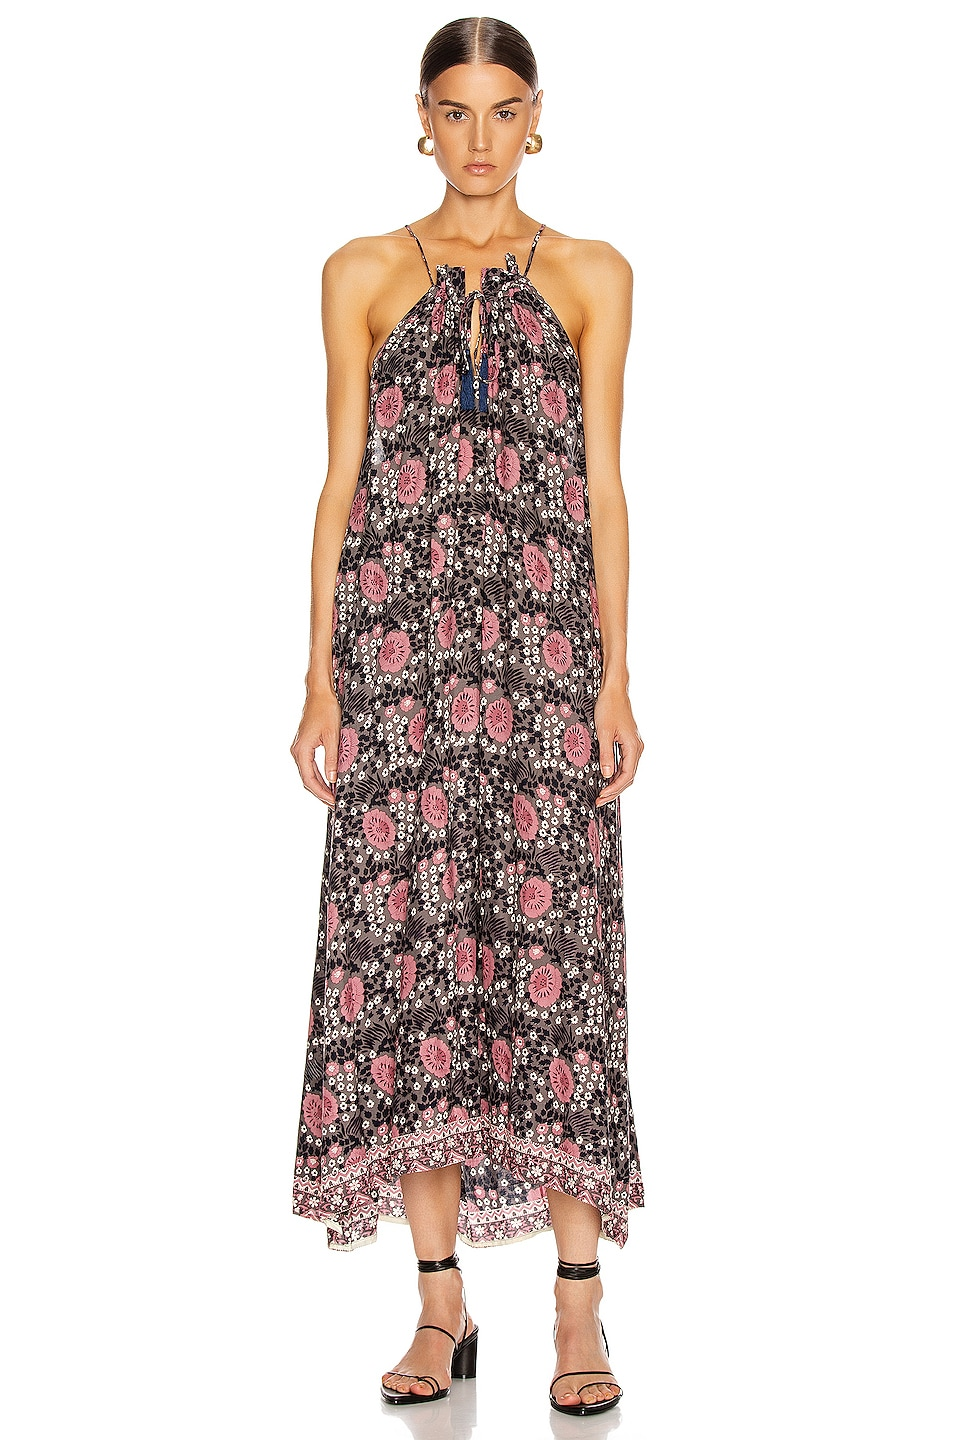 Image 2 of Natalie Martin Marlien Maxi Dress in Vintage Flowers Violet